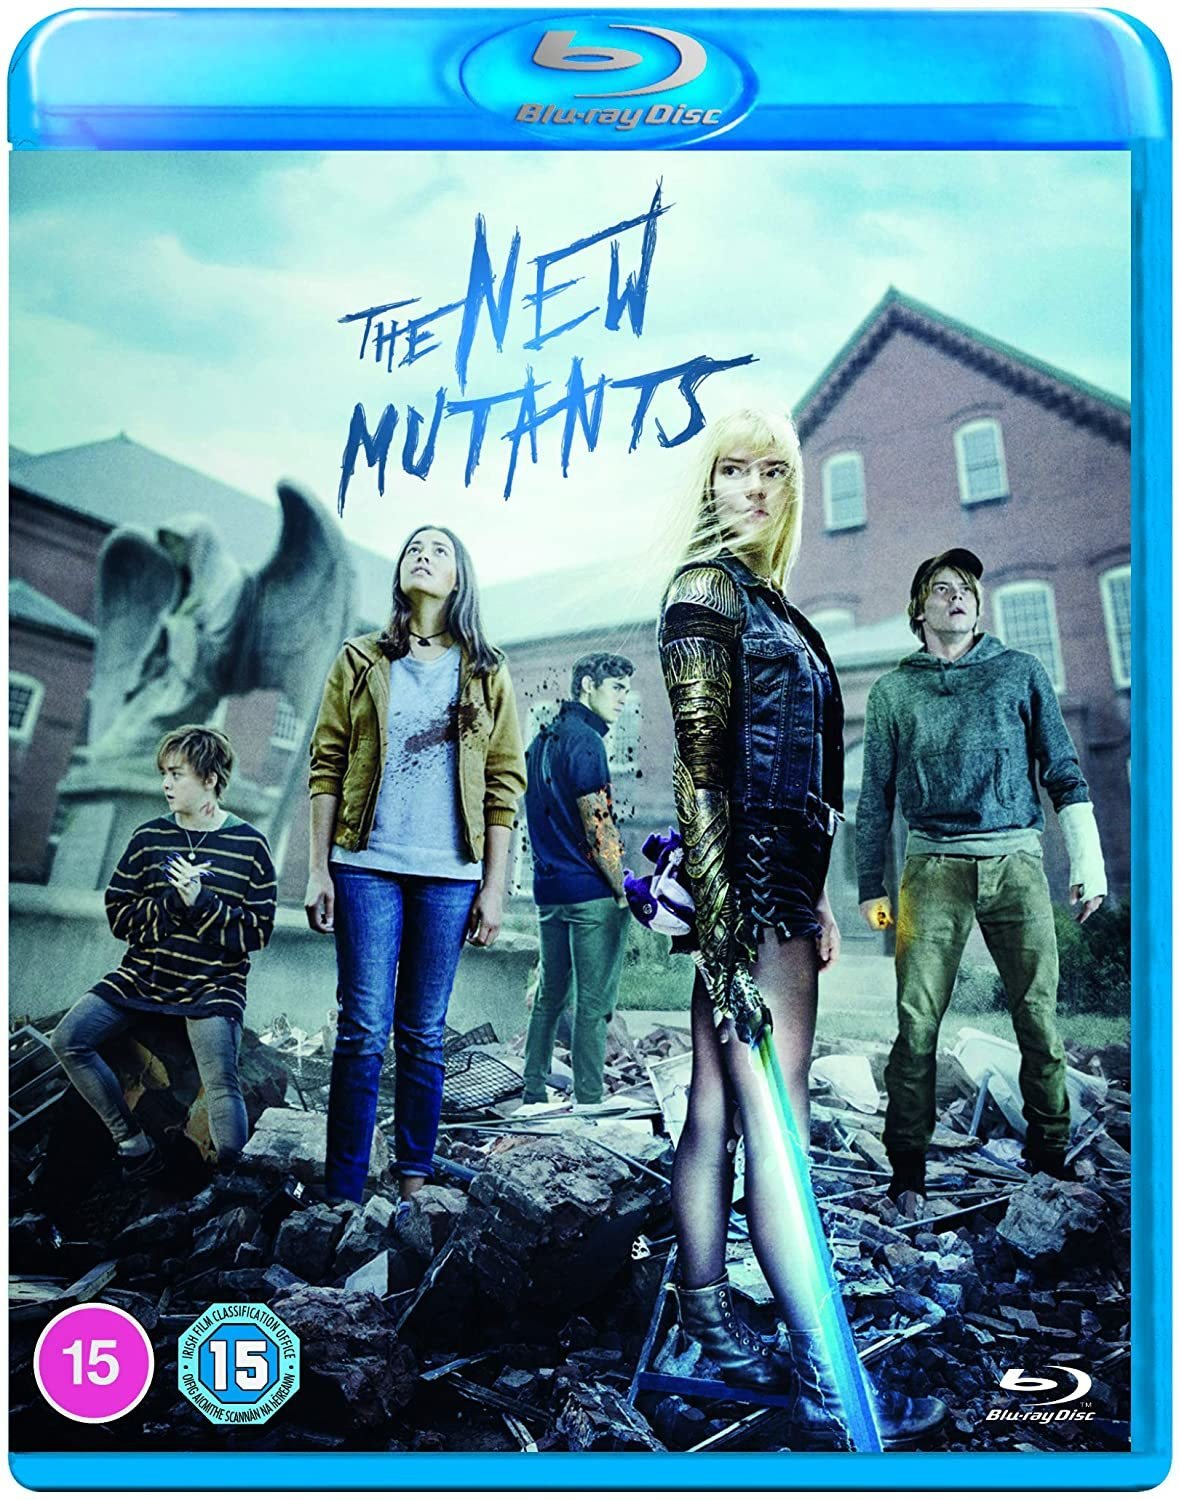 The New Mutants (2020) poster image